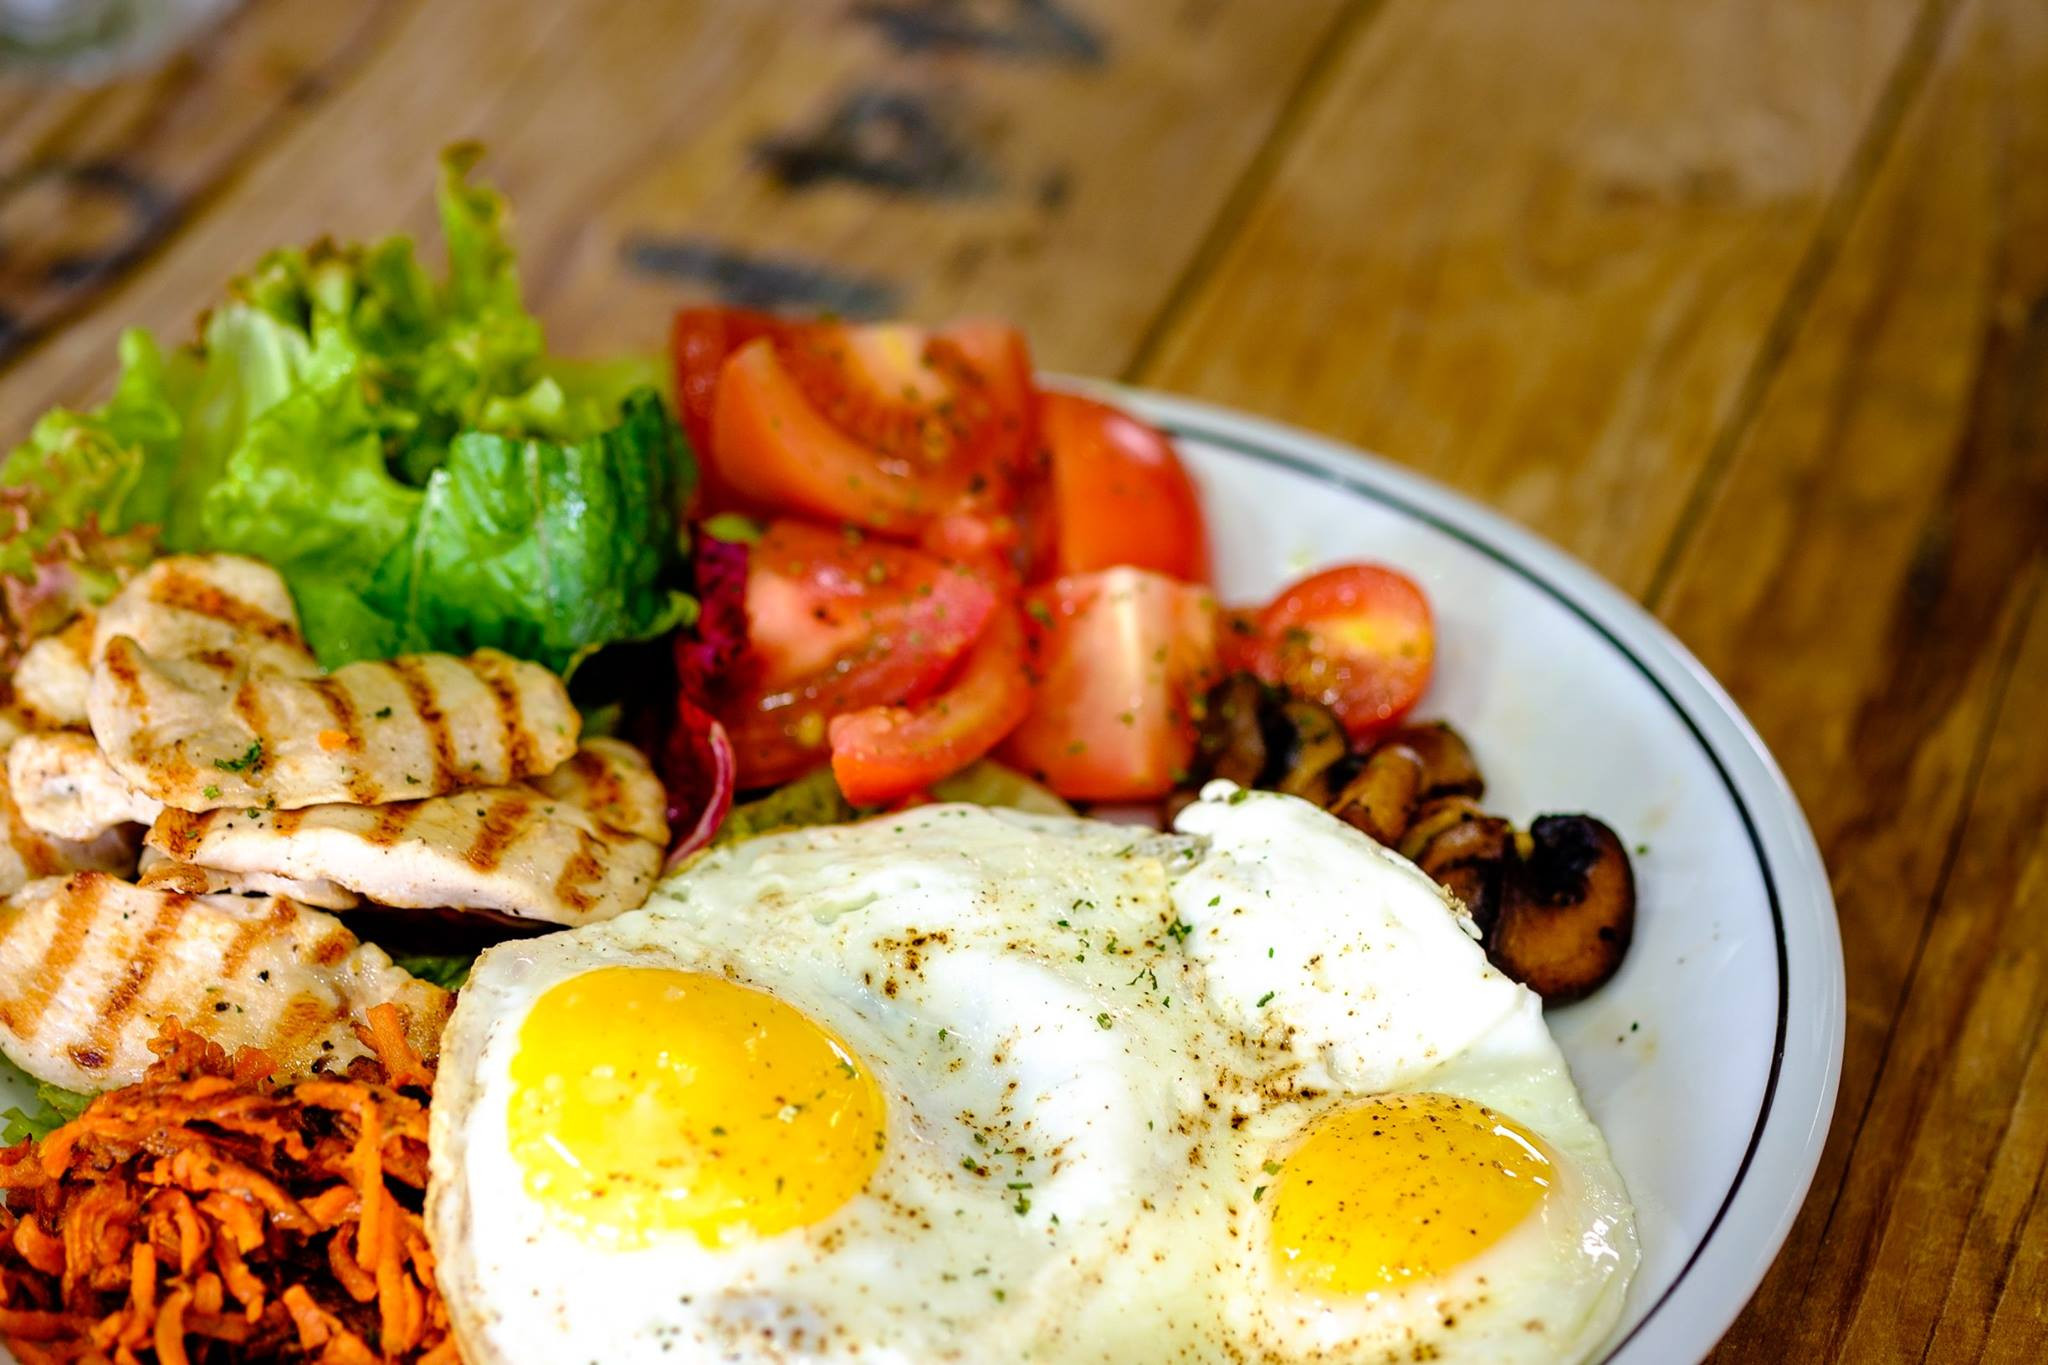 Healthy Places To Eat Breakfast  Top Places For Healthy Breakfast in Dubai to Try Today